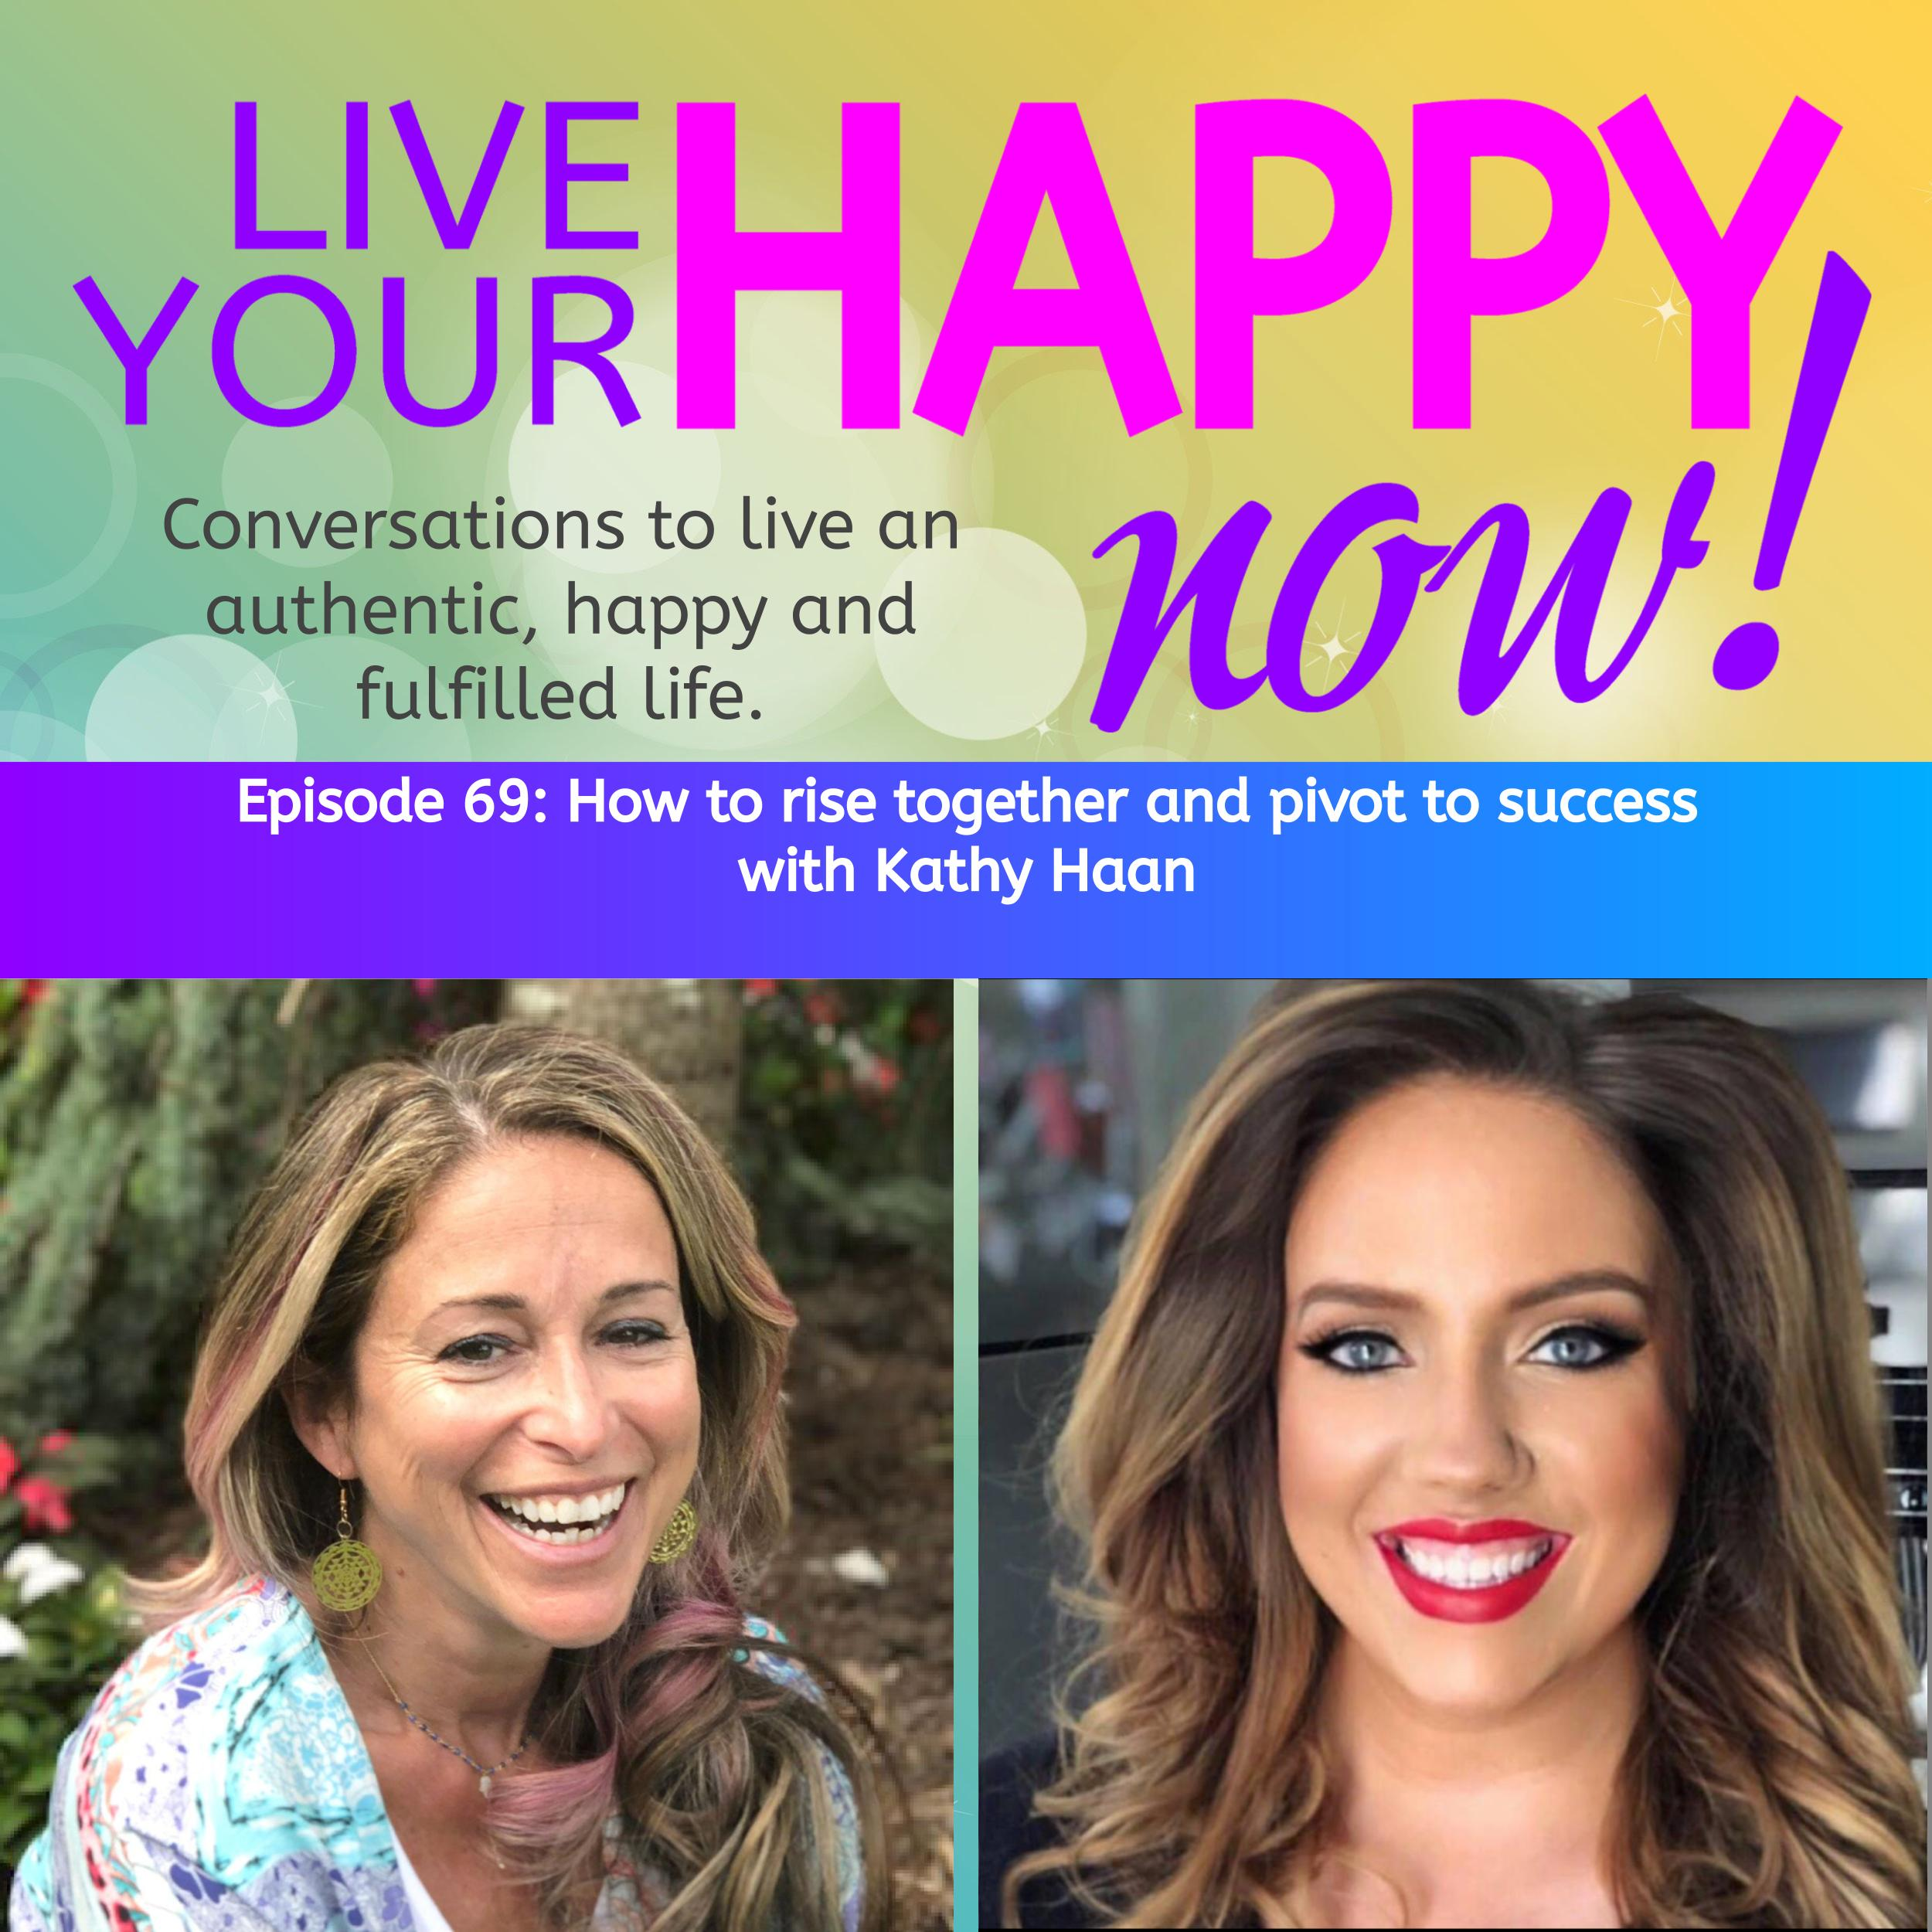 Artwork for Episode 69: How to rise together and pivot to success with Kathy Haan